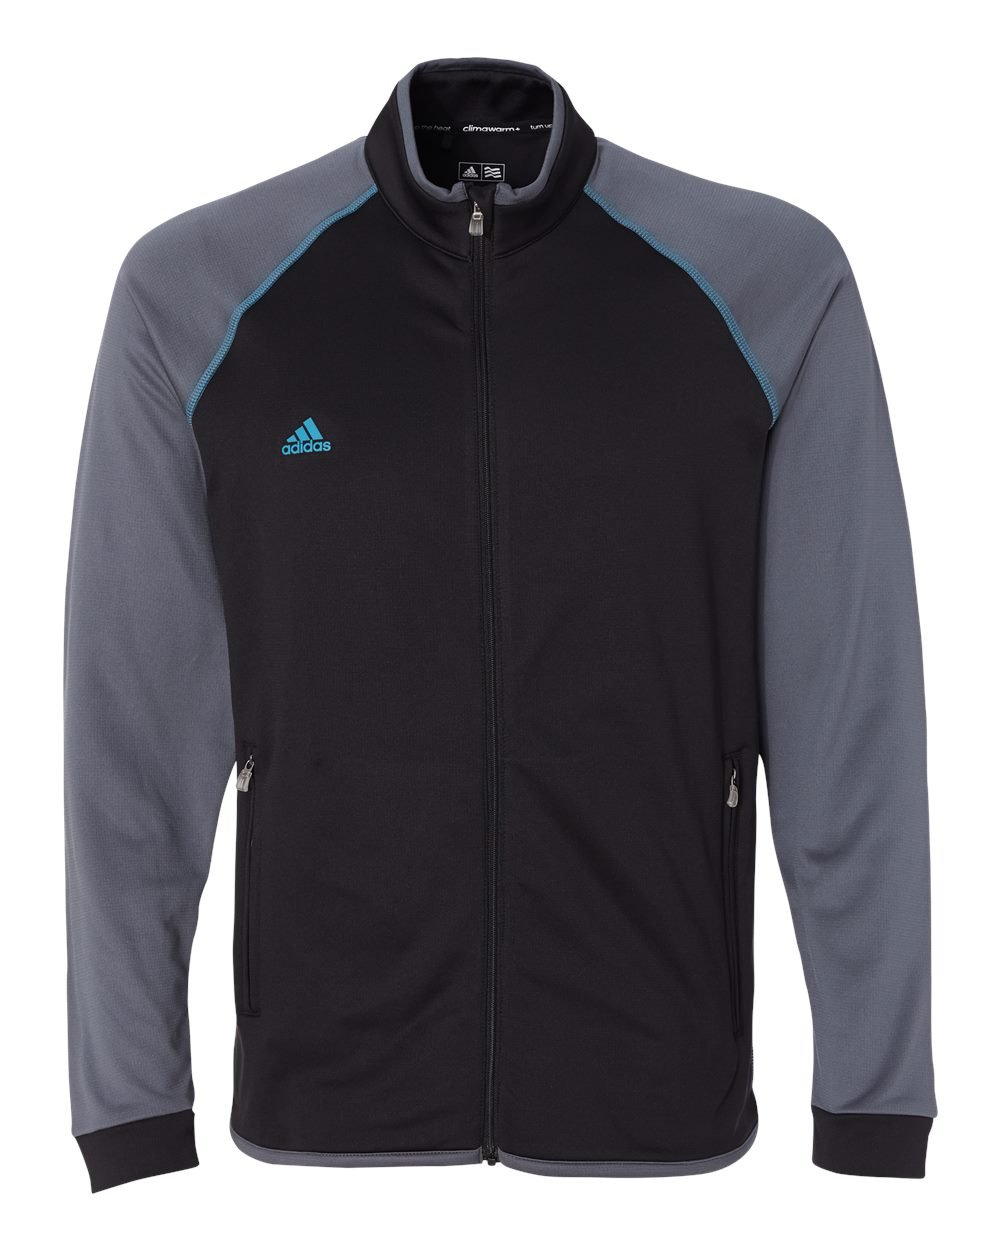 adidas Men's Clima Warm Full Zip Jacket, Black/Lead, Medium